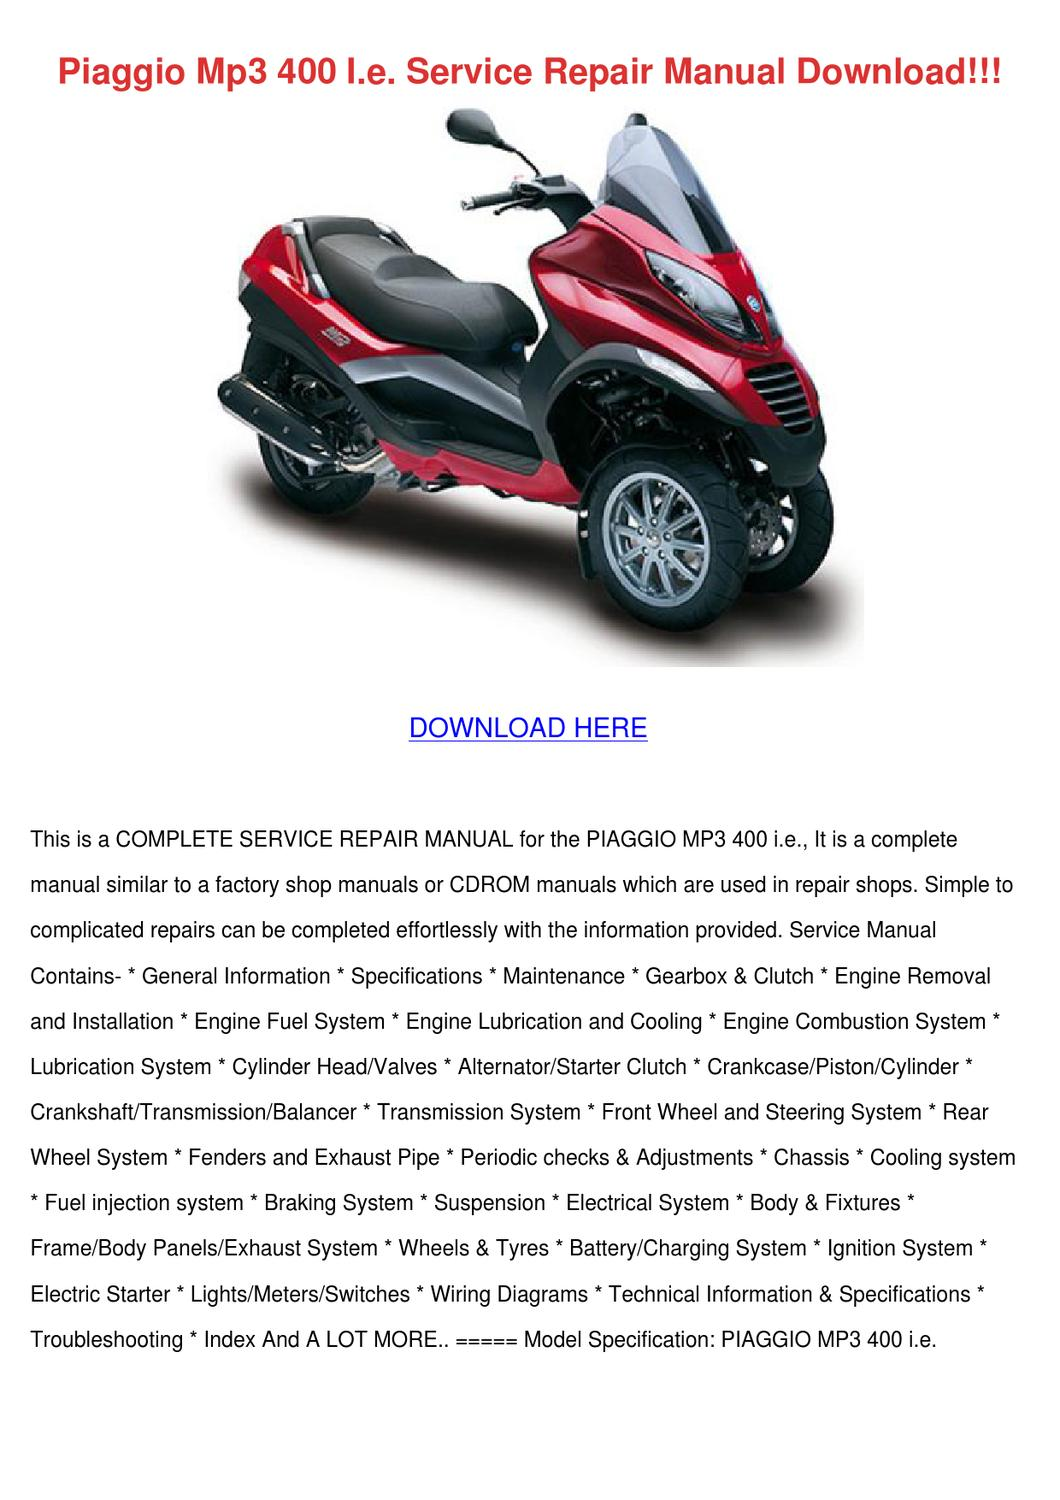 piaggio mp3 400 ie service repair manual downjacobgibbons - issuu